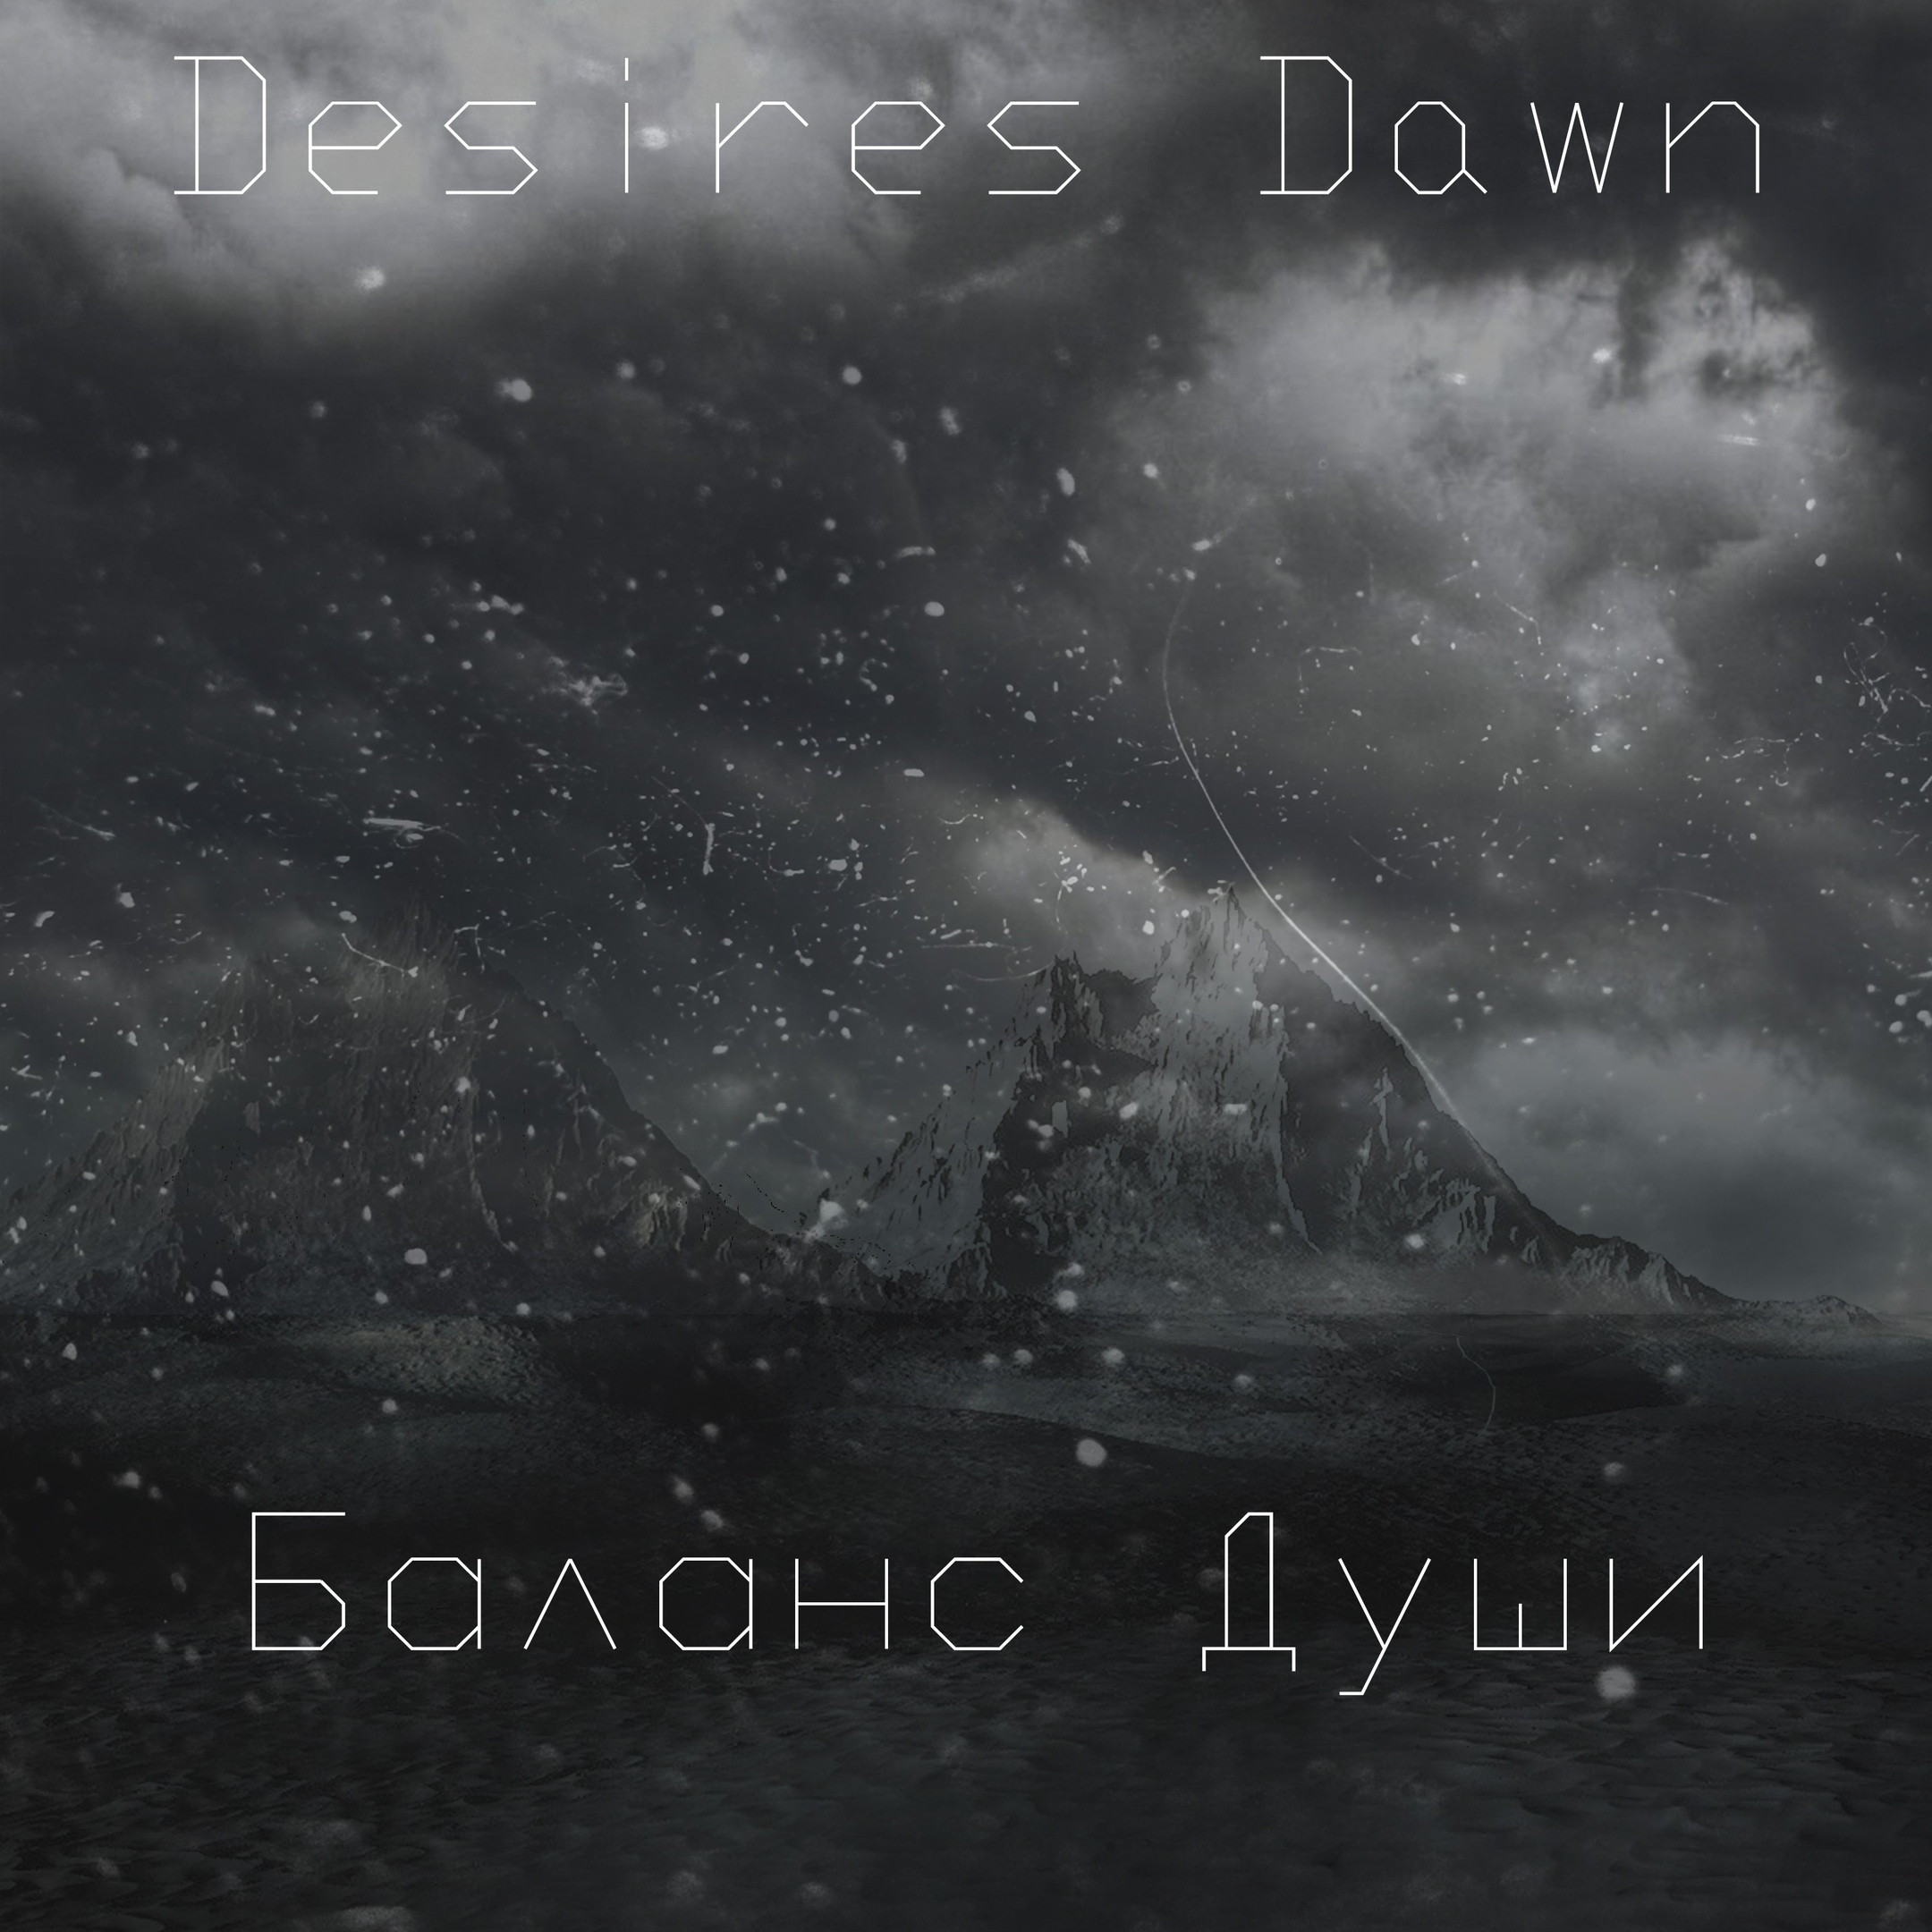 DesiresDawn - Баланс души [single] (2020)